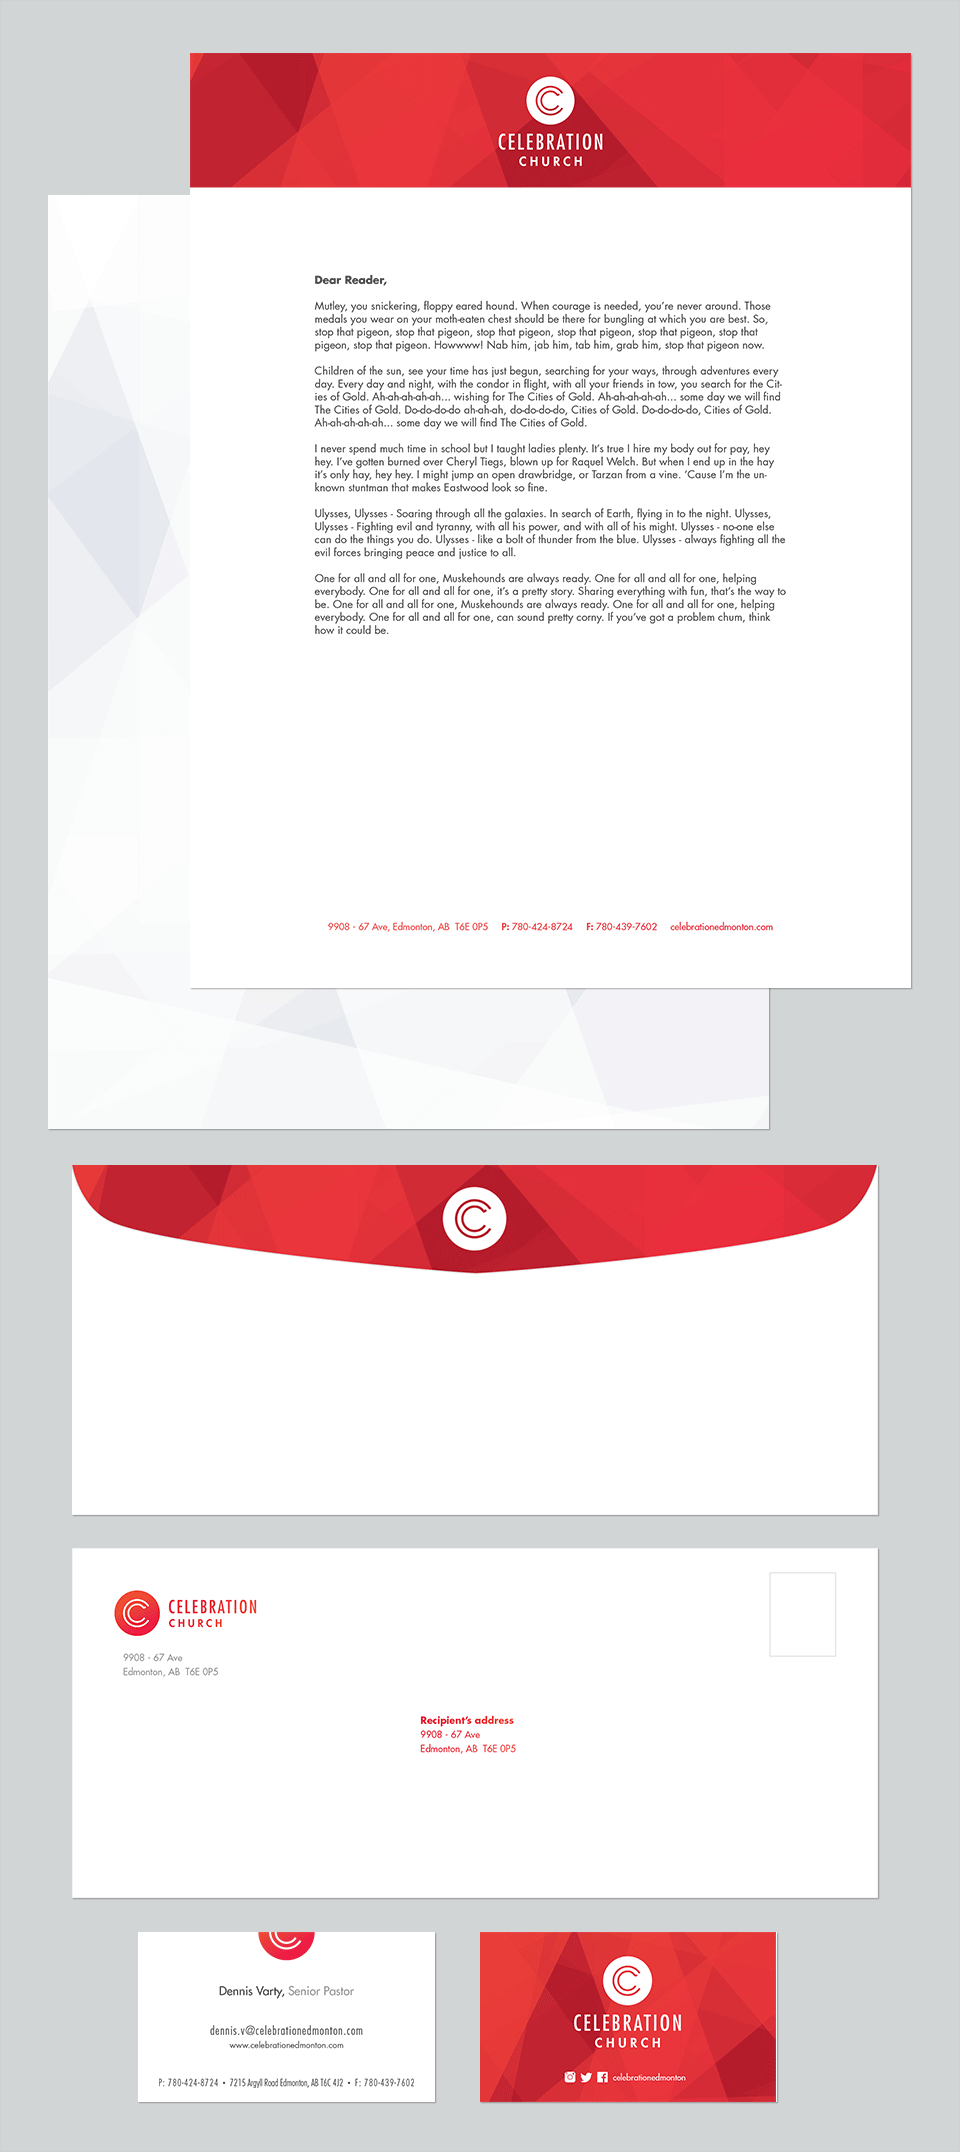 celebration-stationary-mockup3.png